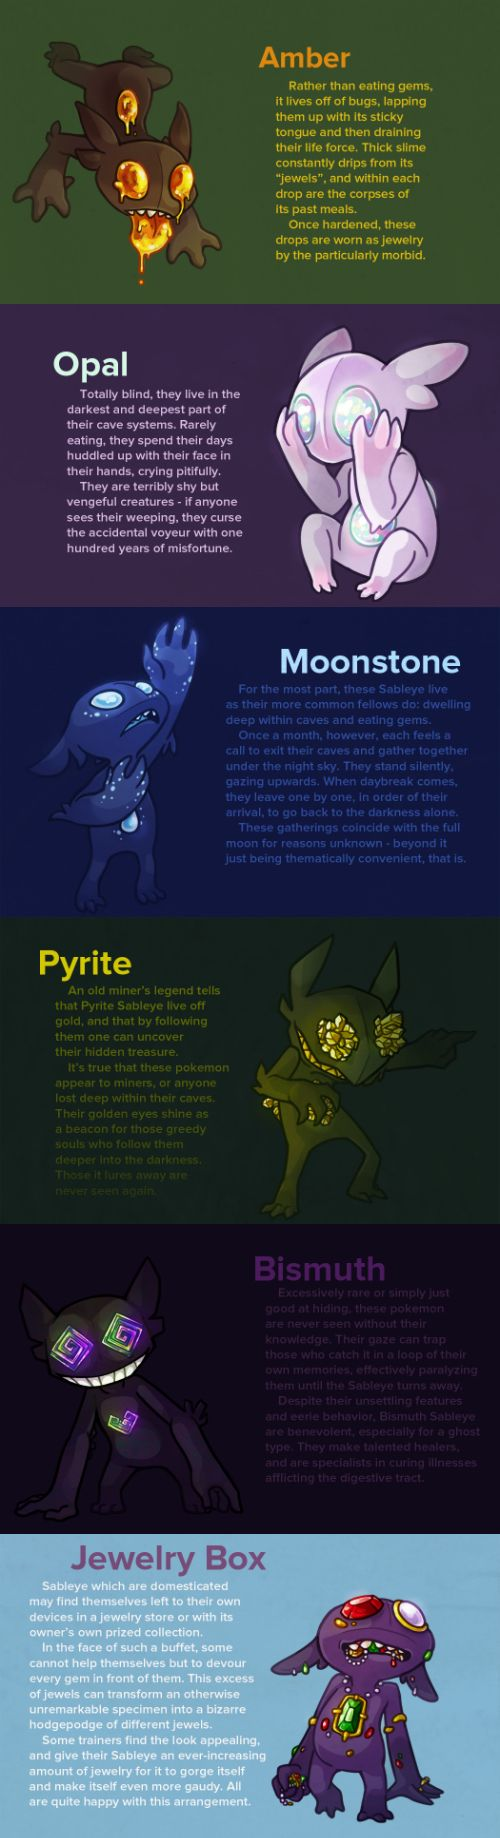 What If Sableye Subspecies Were Based On Different Gems Http Chzb Gr 1eqosa5 Jeux Pokemon Pokemon Drole Pokemon Jeux Video